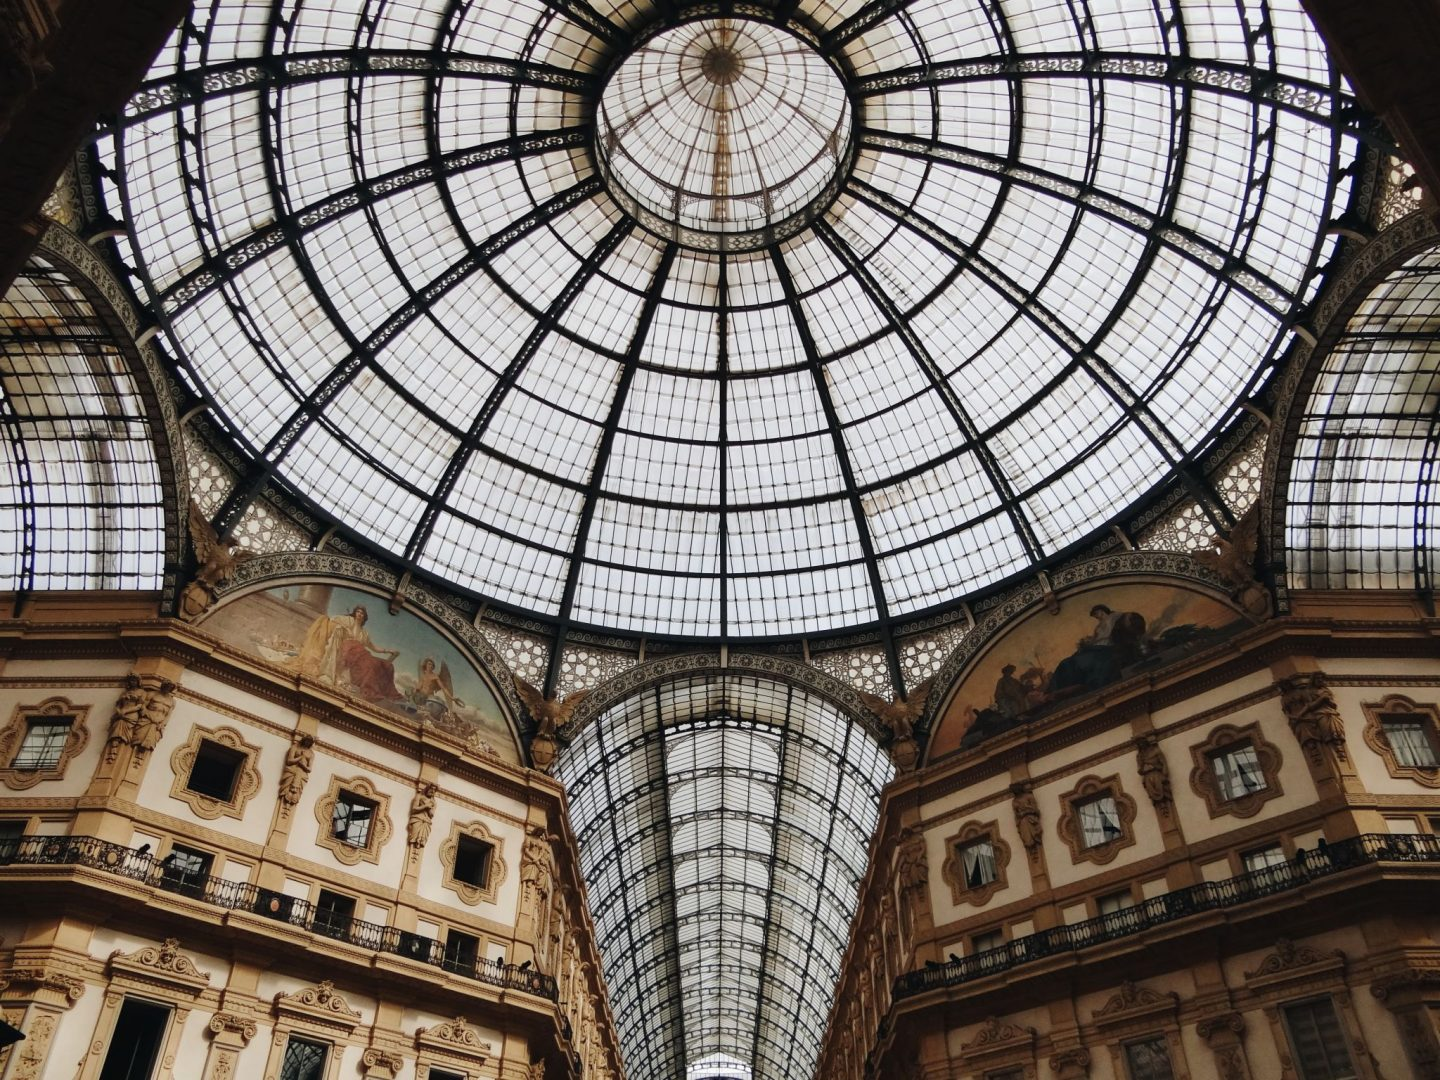 Arcade of galleria vittorio emmanuele in Milan